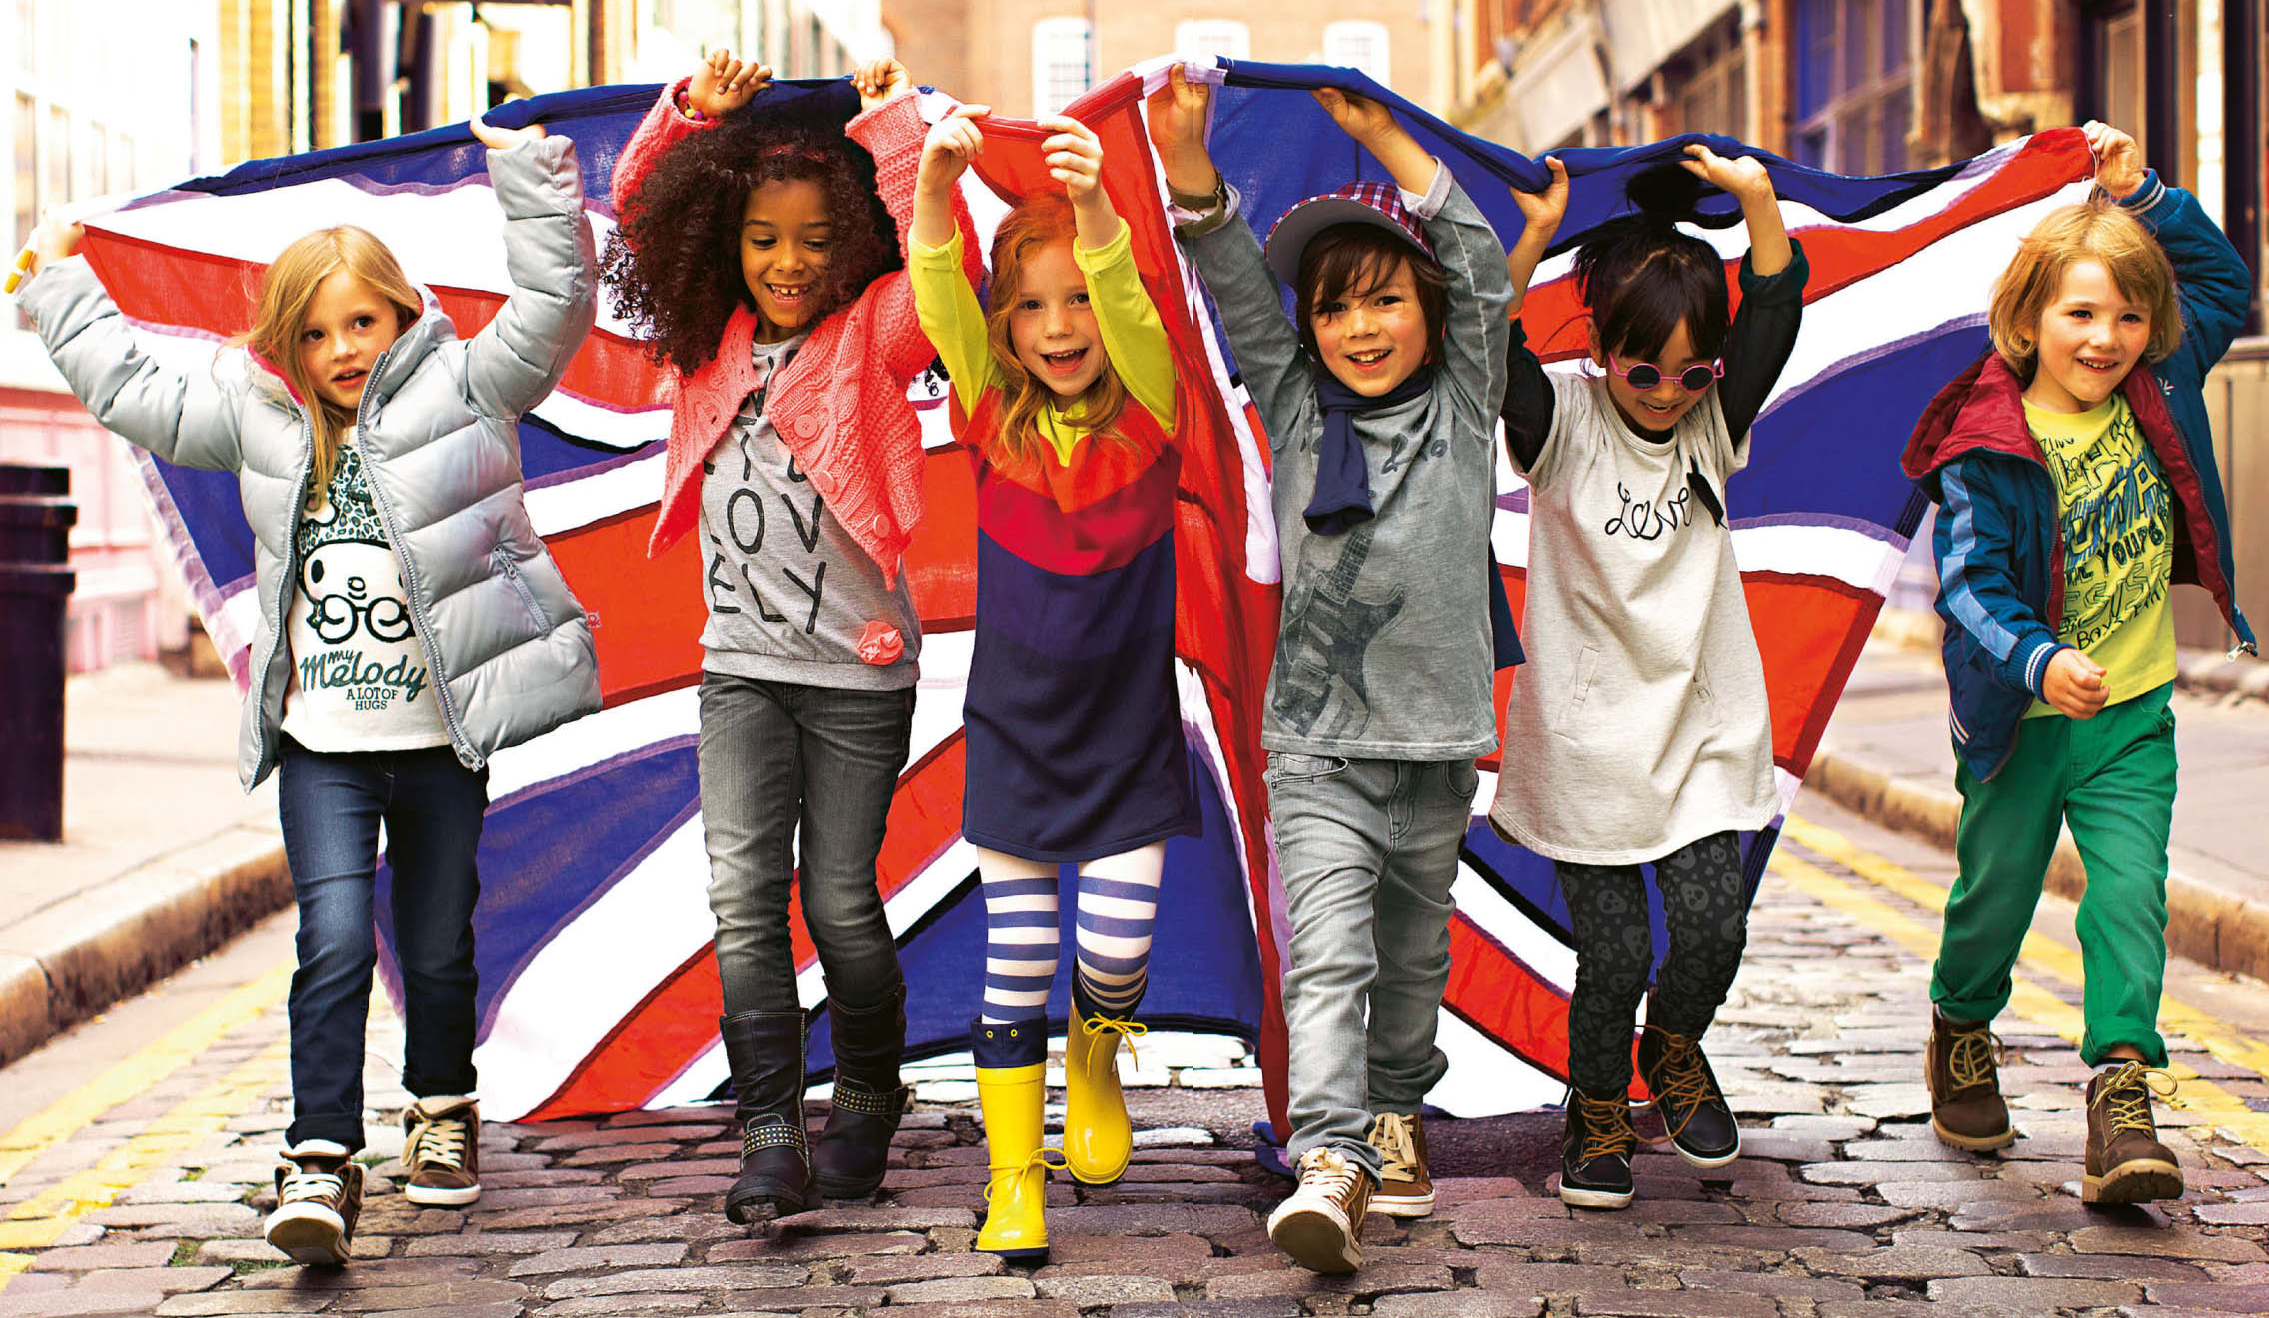 Karstadt kids shot union jack flag.jpg